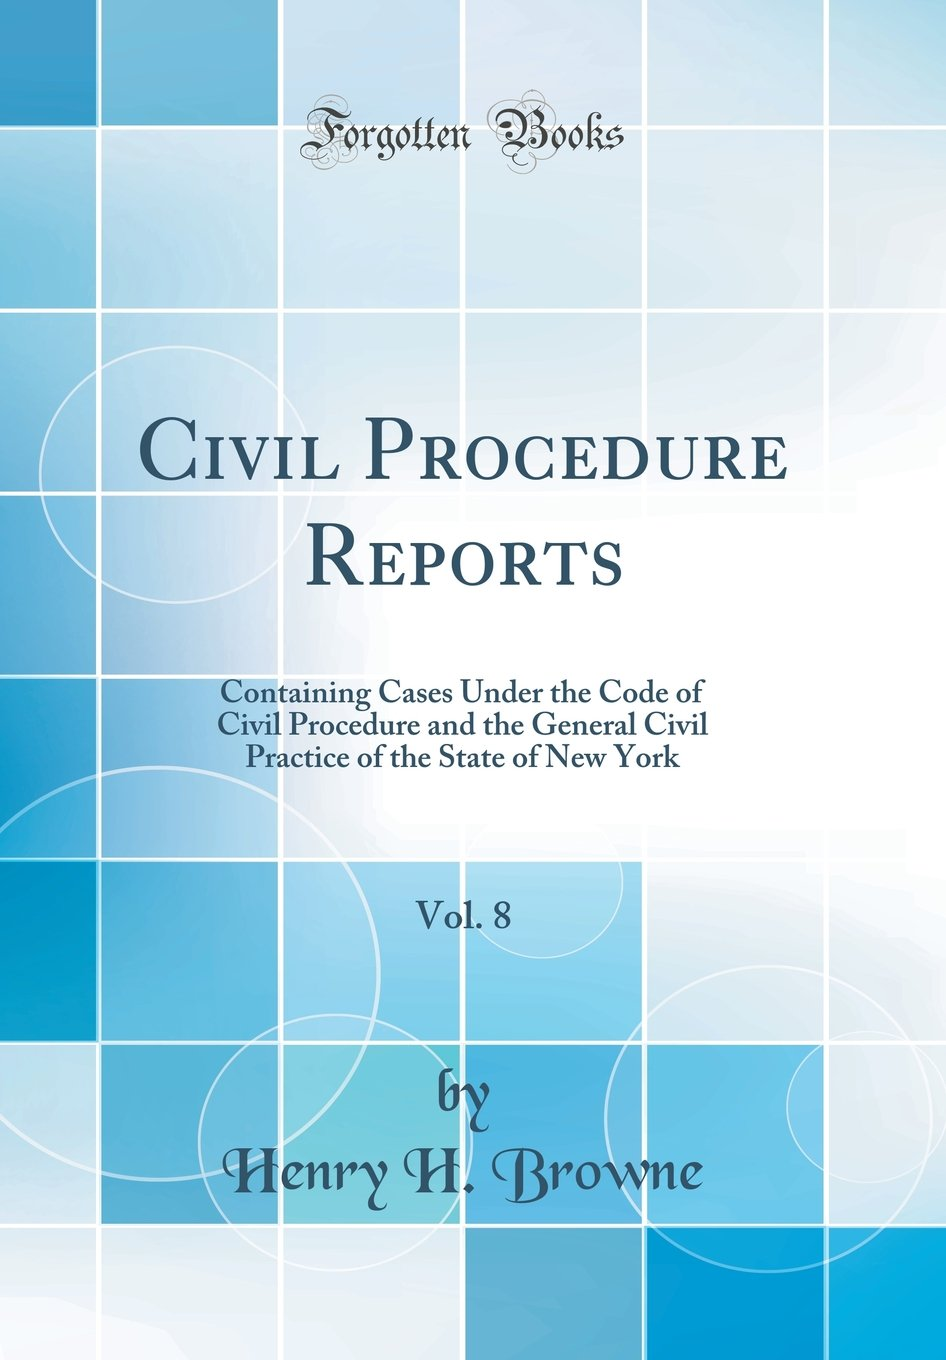 Civil Procedure Reports, Vol. 8: Containing Cases Under the Code of Civil Procedure and the General Civil Practice of the State of New York (Classic Reprint) ebook